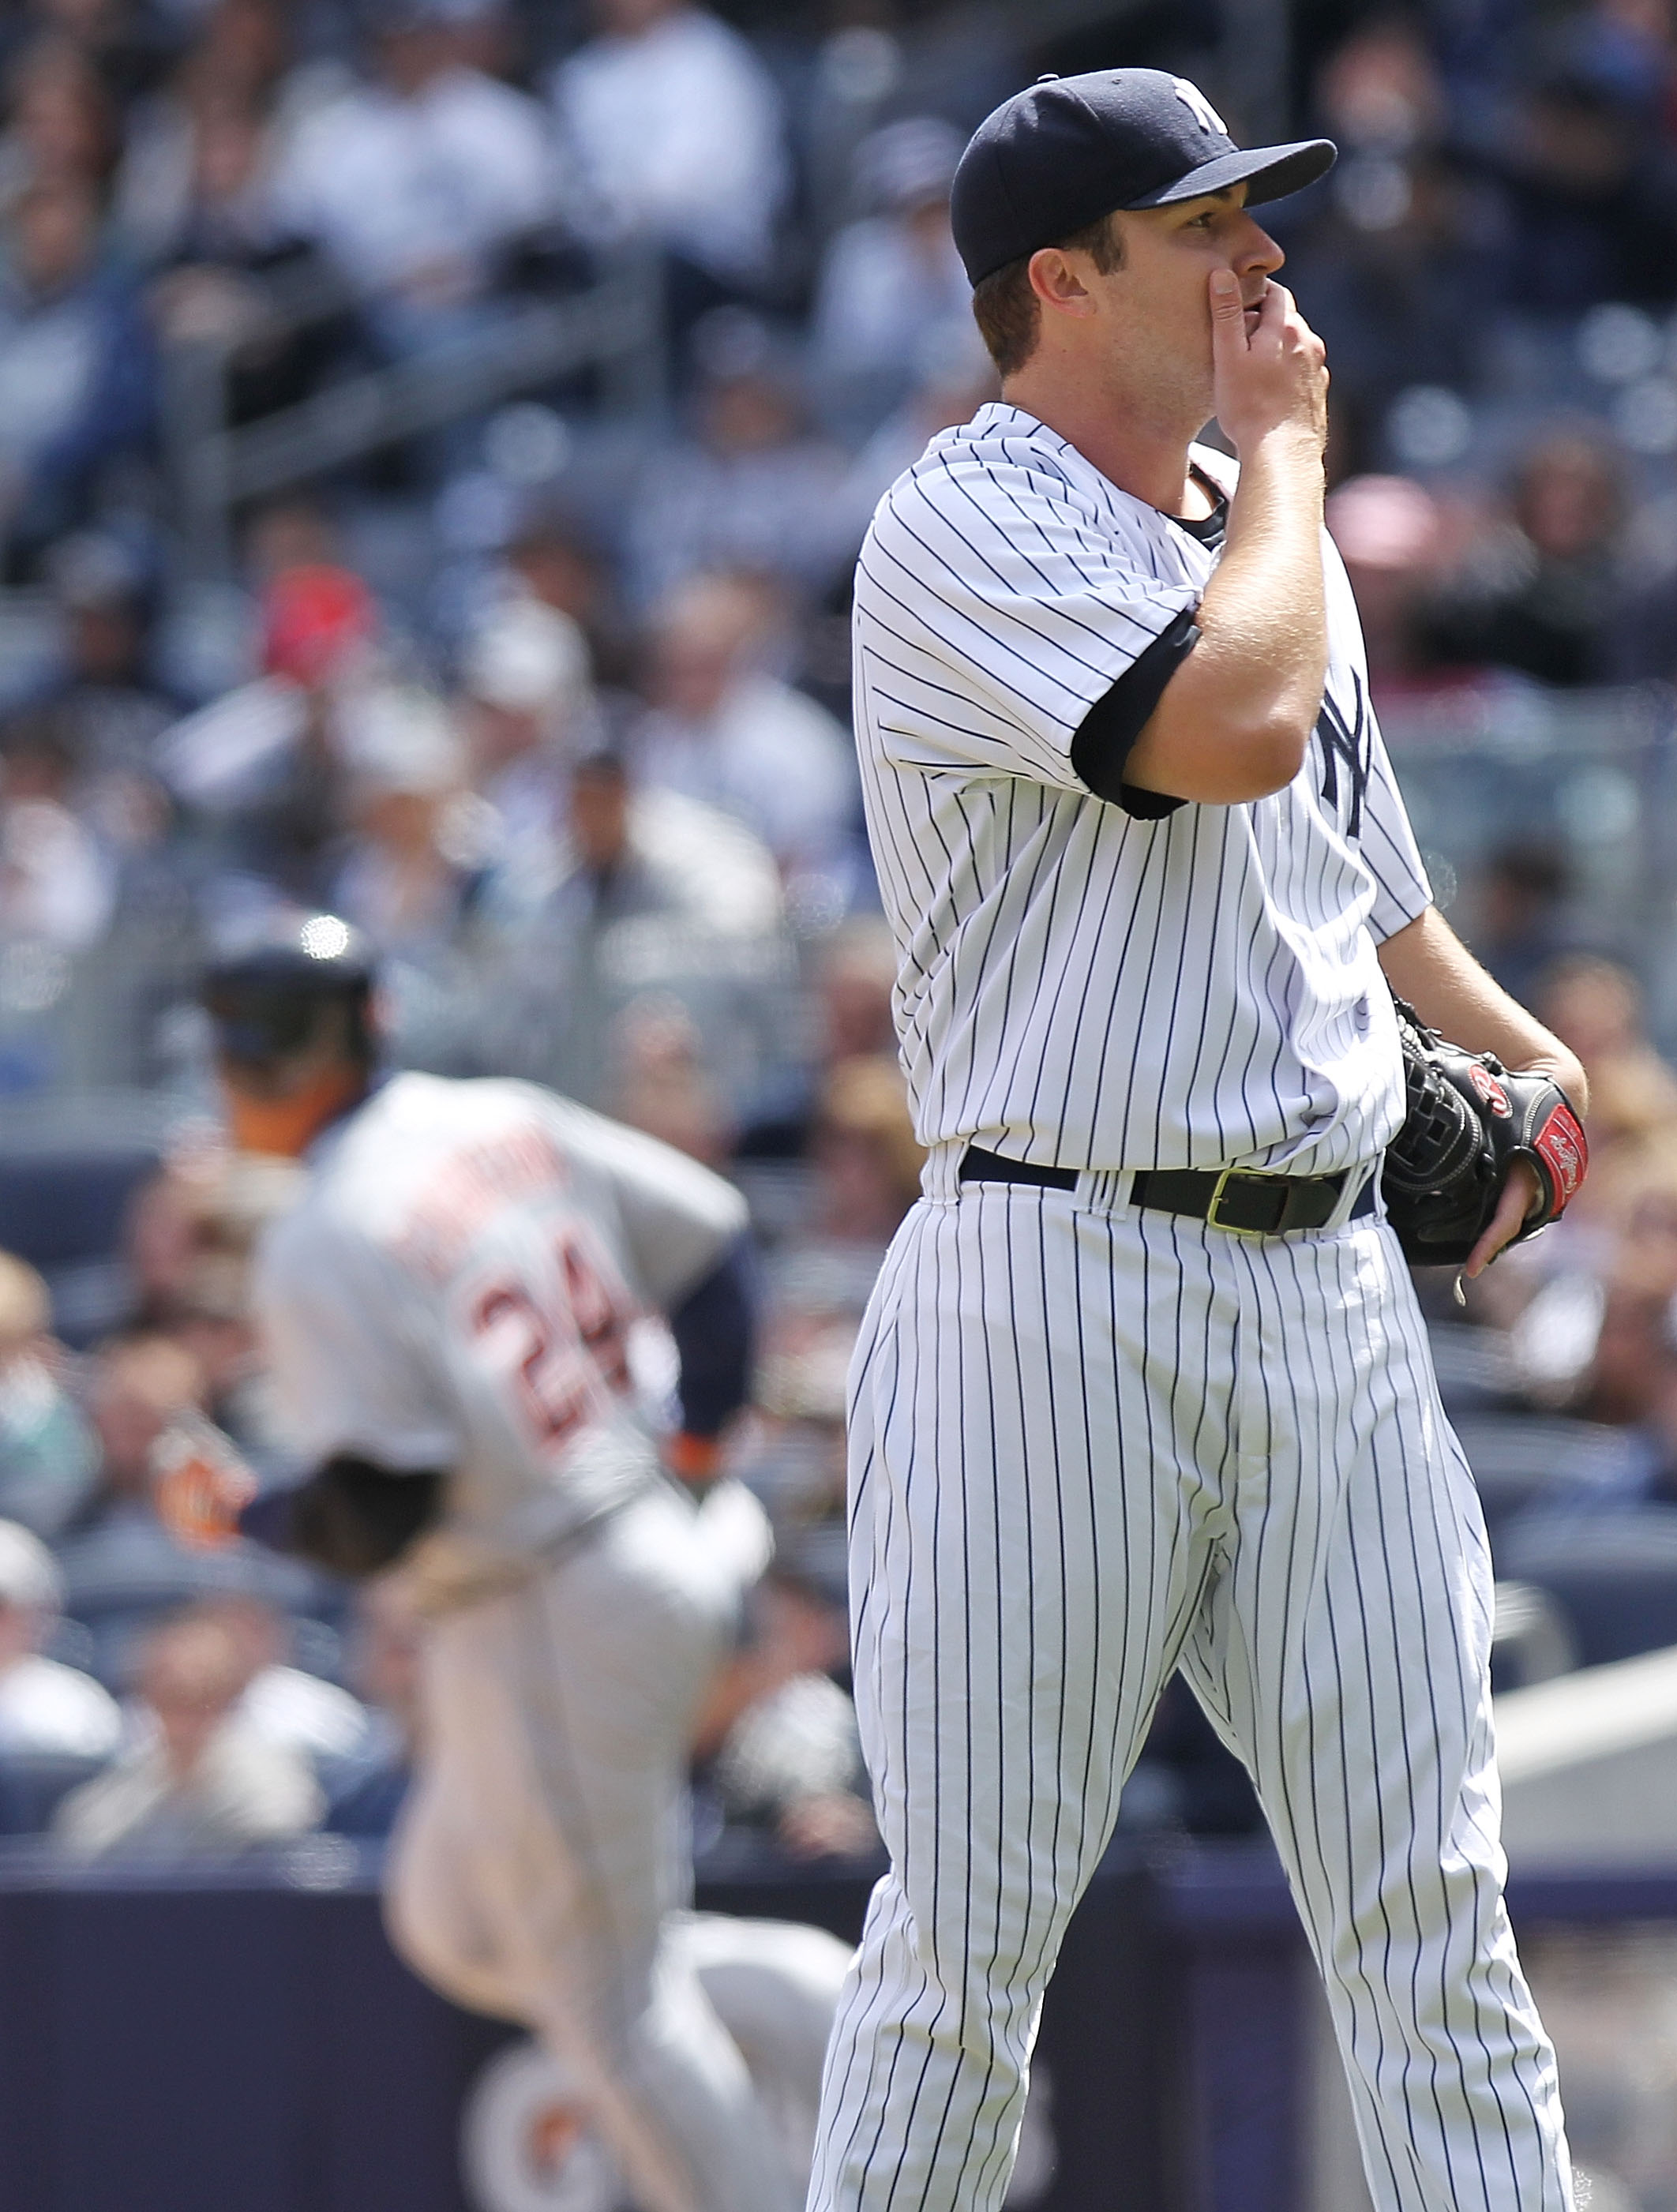 NEW YORK, NY - APRIL 03:  Phil Hughes #65 of the New York Yankees reacts after Miguel Cabrera #24 of the Detroit Tigers rounds the bases on a two run home run at Yankee Stadium on April 3, 2011 in the Bronx borough of New York City.  (Photo by Nick Laham/